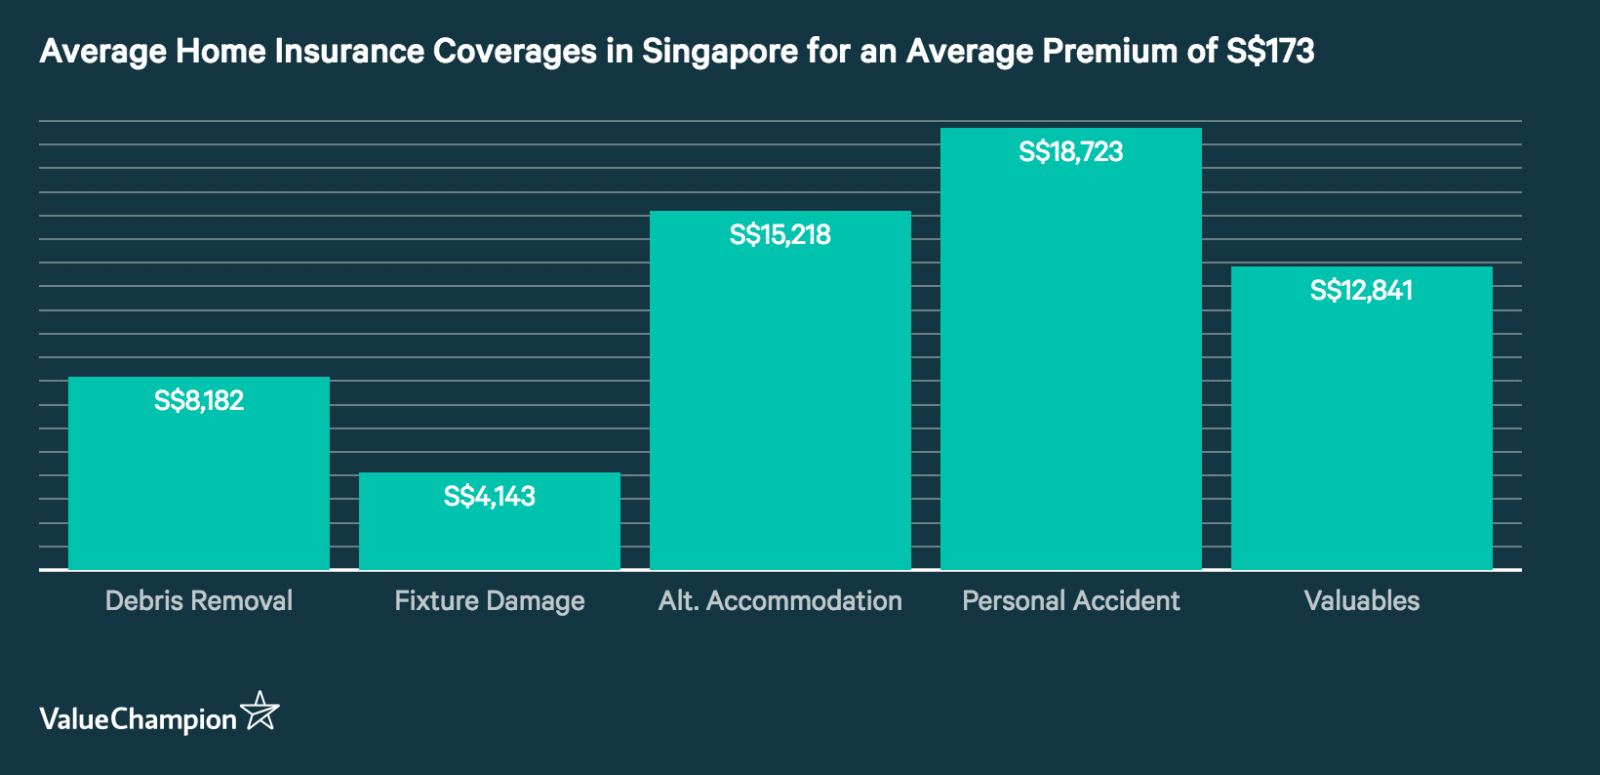 This graph shows the average home insurance coverage a person will get for an average premium of S$173 in Singapore